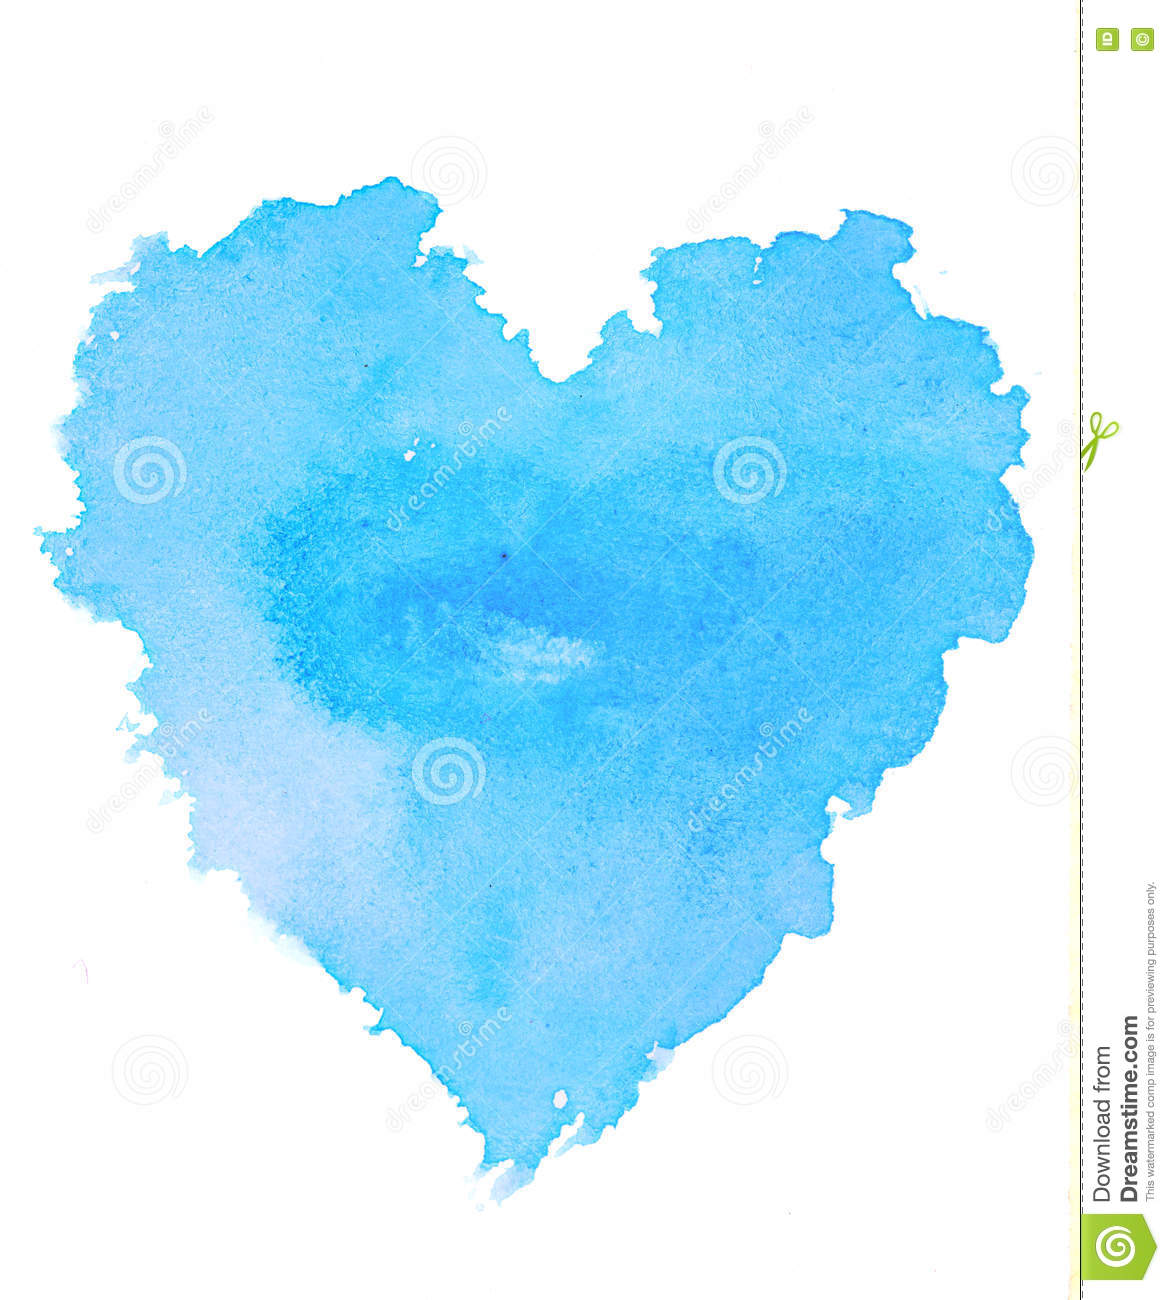 Rough blue heart shape water color illustration on white background